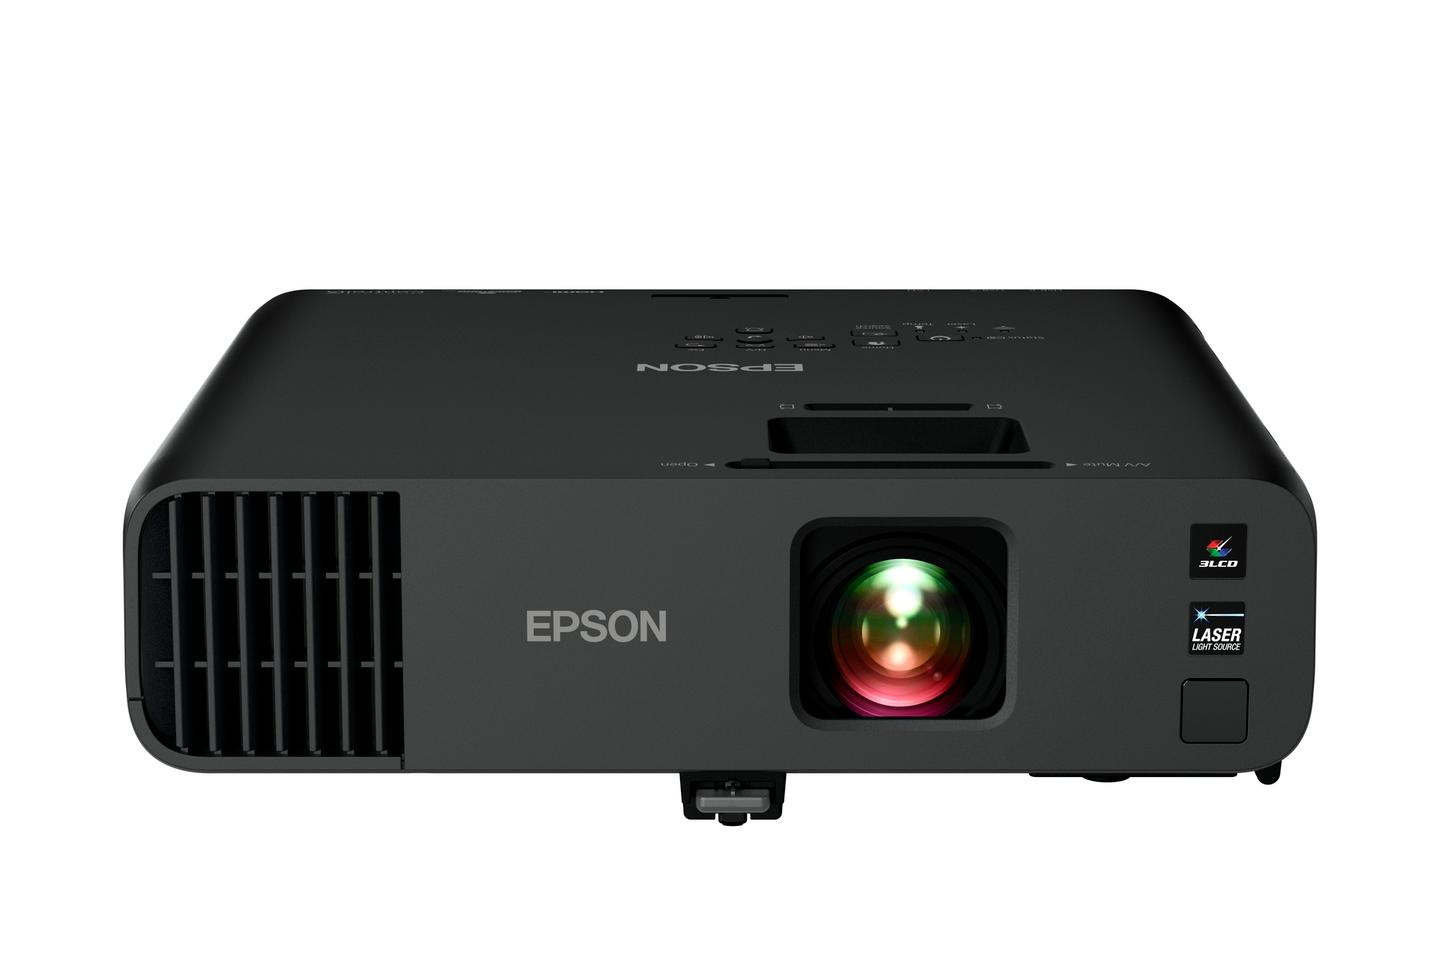 Epson's EX Series business projector additions includes this Pro EX10000 Full HD model with 3-chip 3LCD projection technology, a laser light source, wireless technology and a built-in audio system